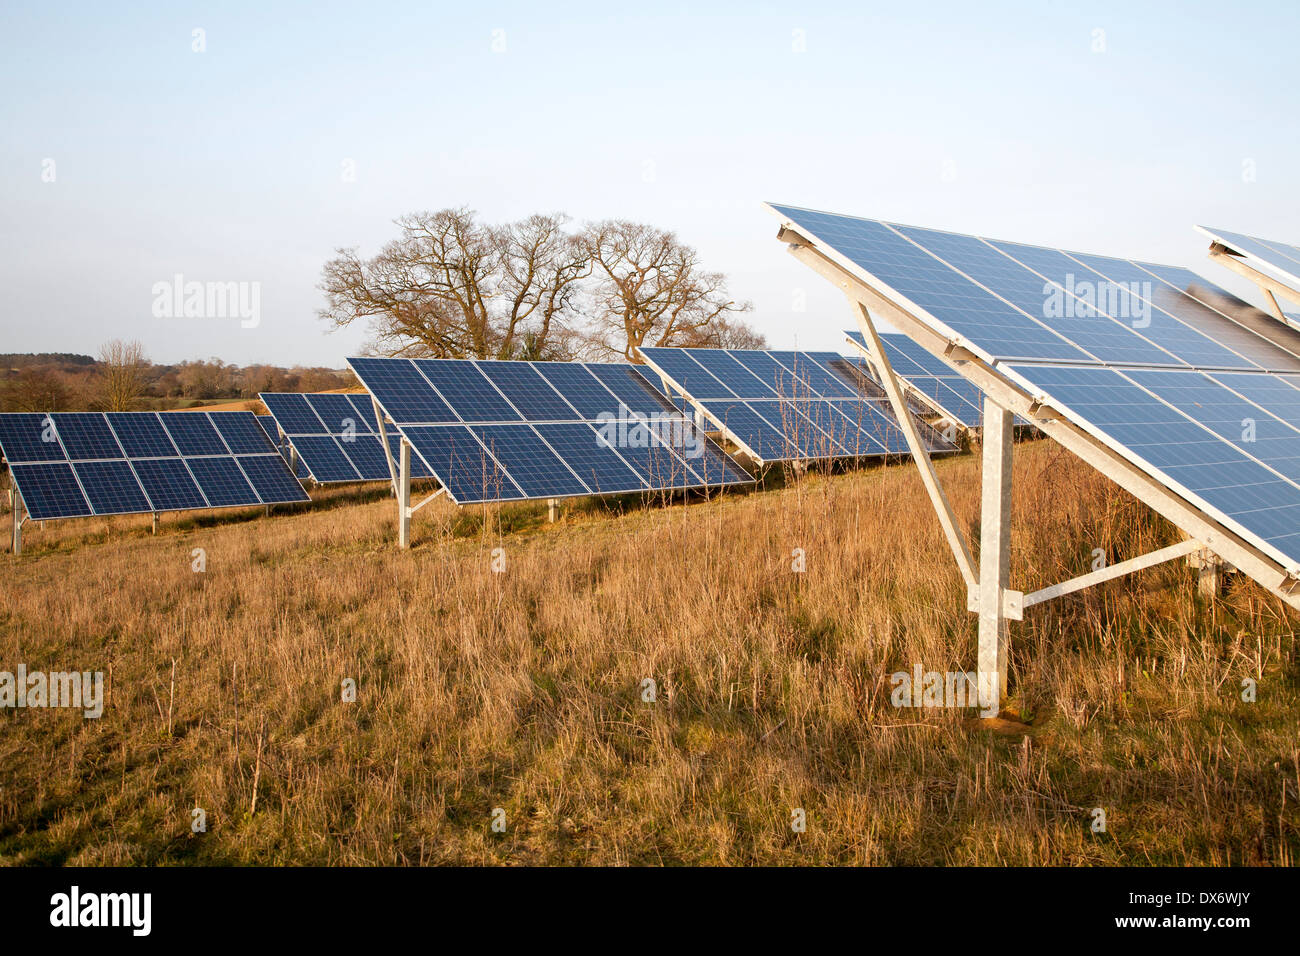 Solar array of photovoltaic panels in countryside at Bromeswell, Suffolk, England - Stock Image